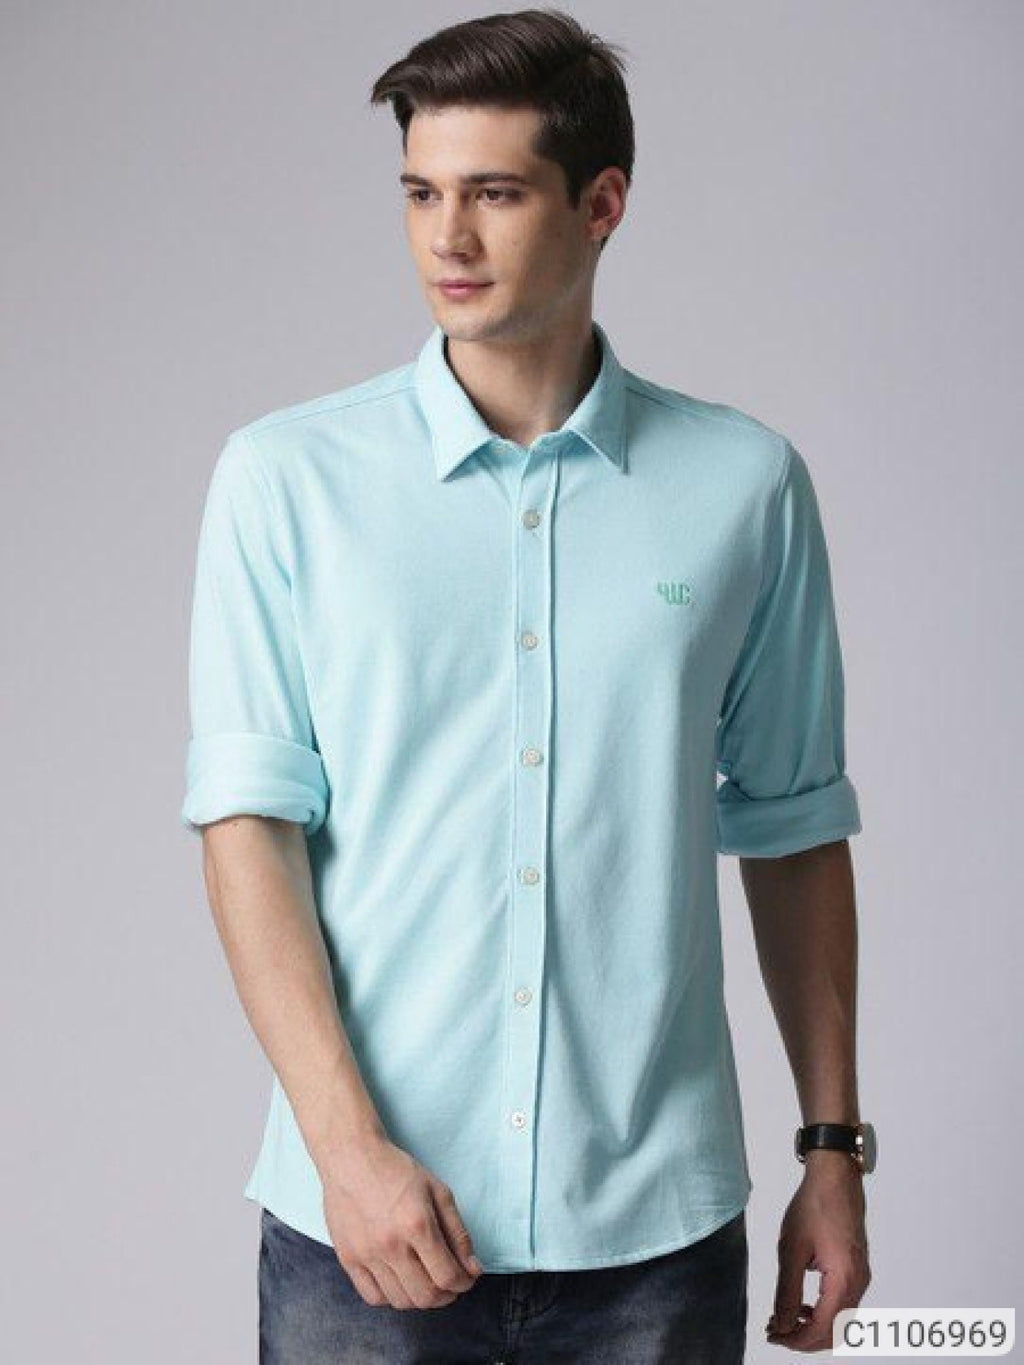 YWC Water Blue Classy Regular Fit Shirt